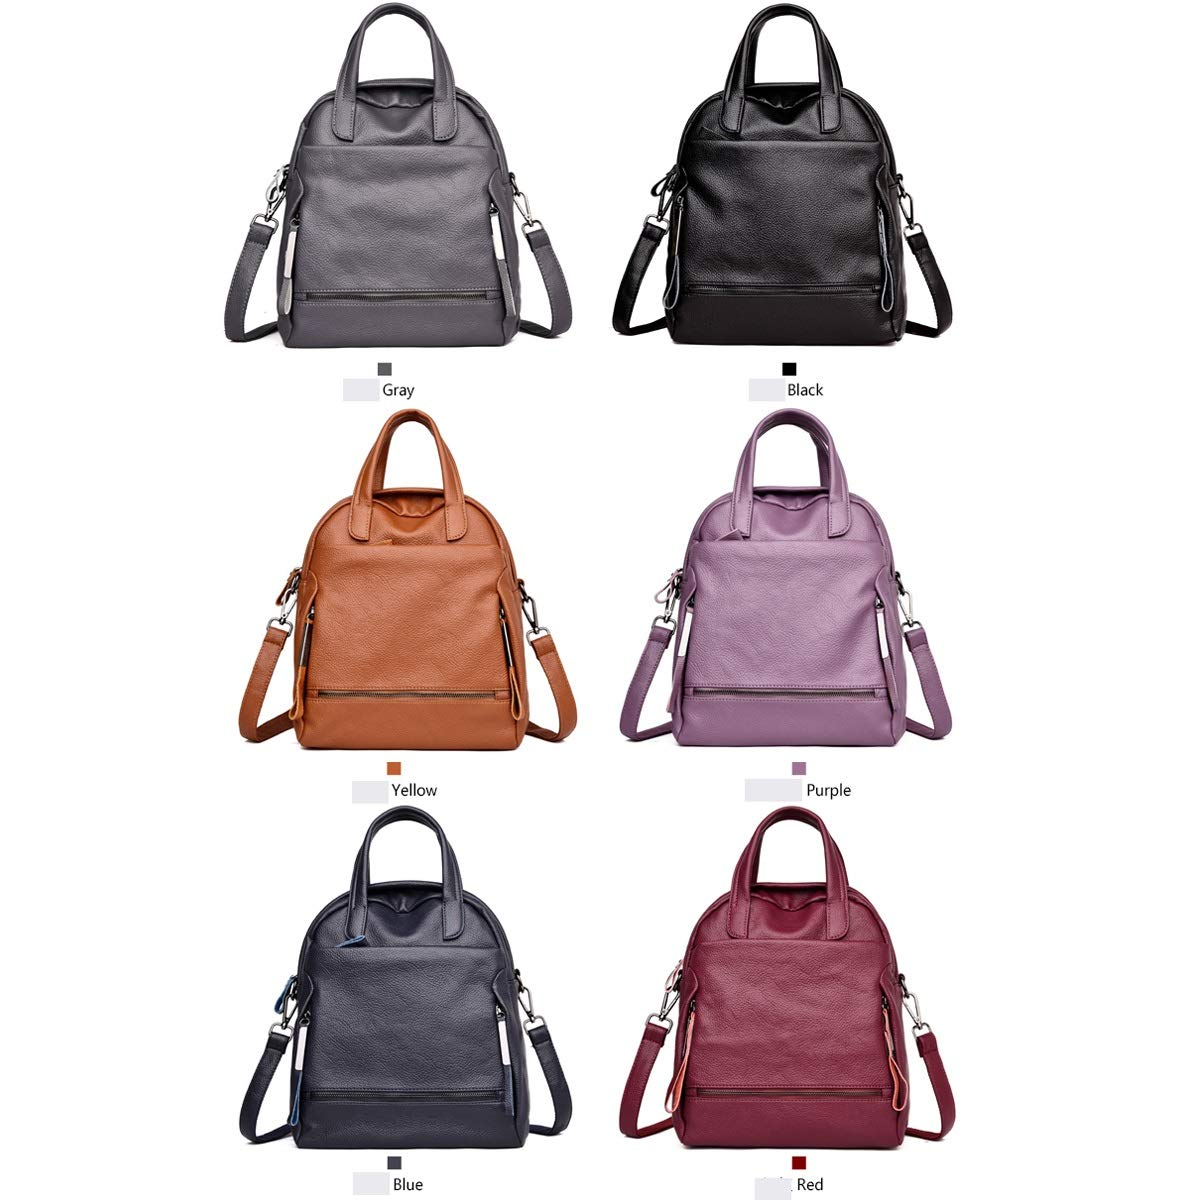 2019 New Simple and Stylish Hengtongtongxun Girls Multi-Purpose Backpack for Everyday Travel//Outdoor//Travel//School//Work//Fashion//Leisure PU Leather Six Colors